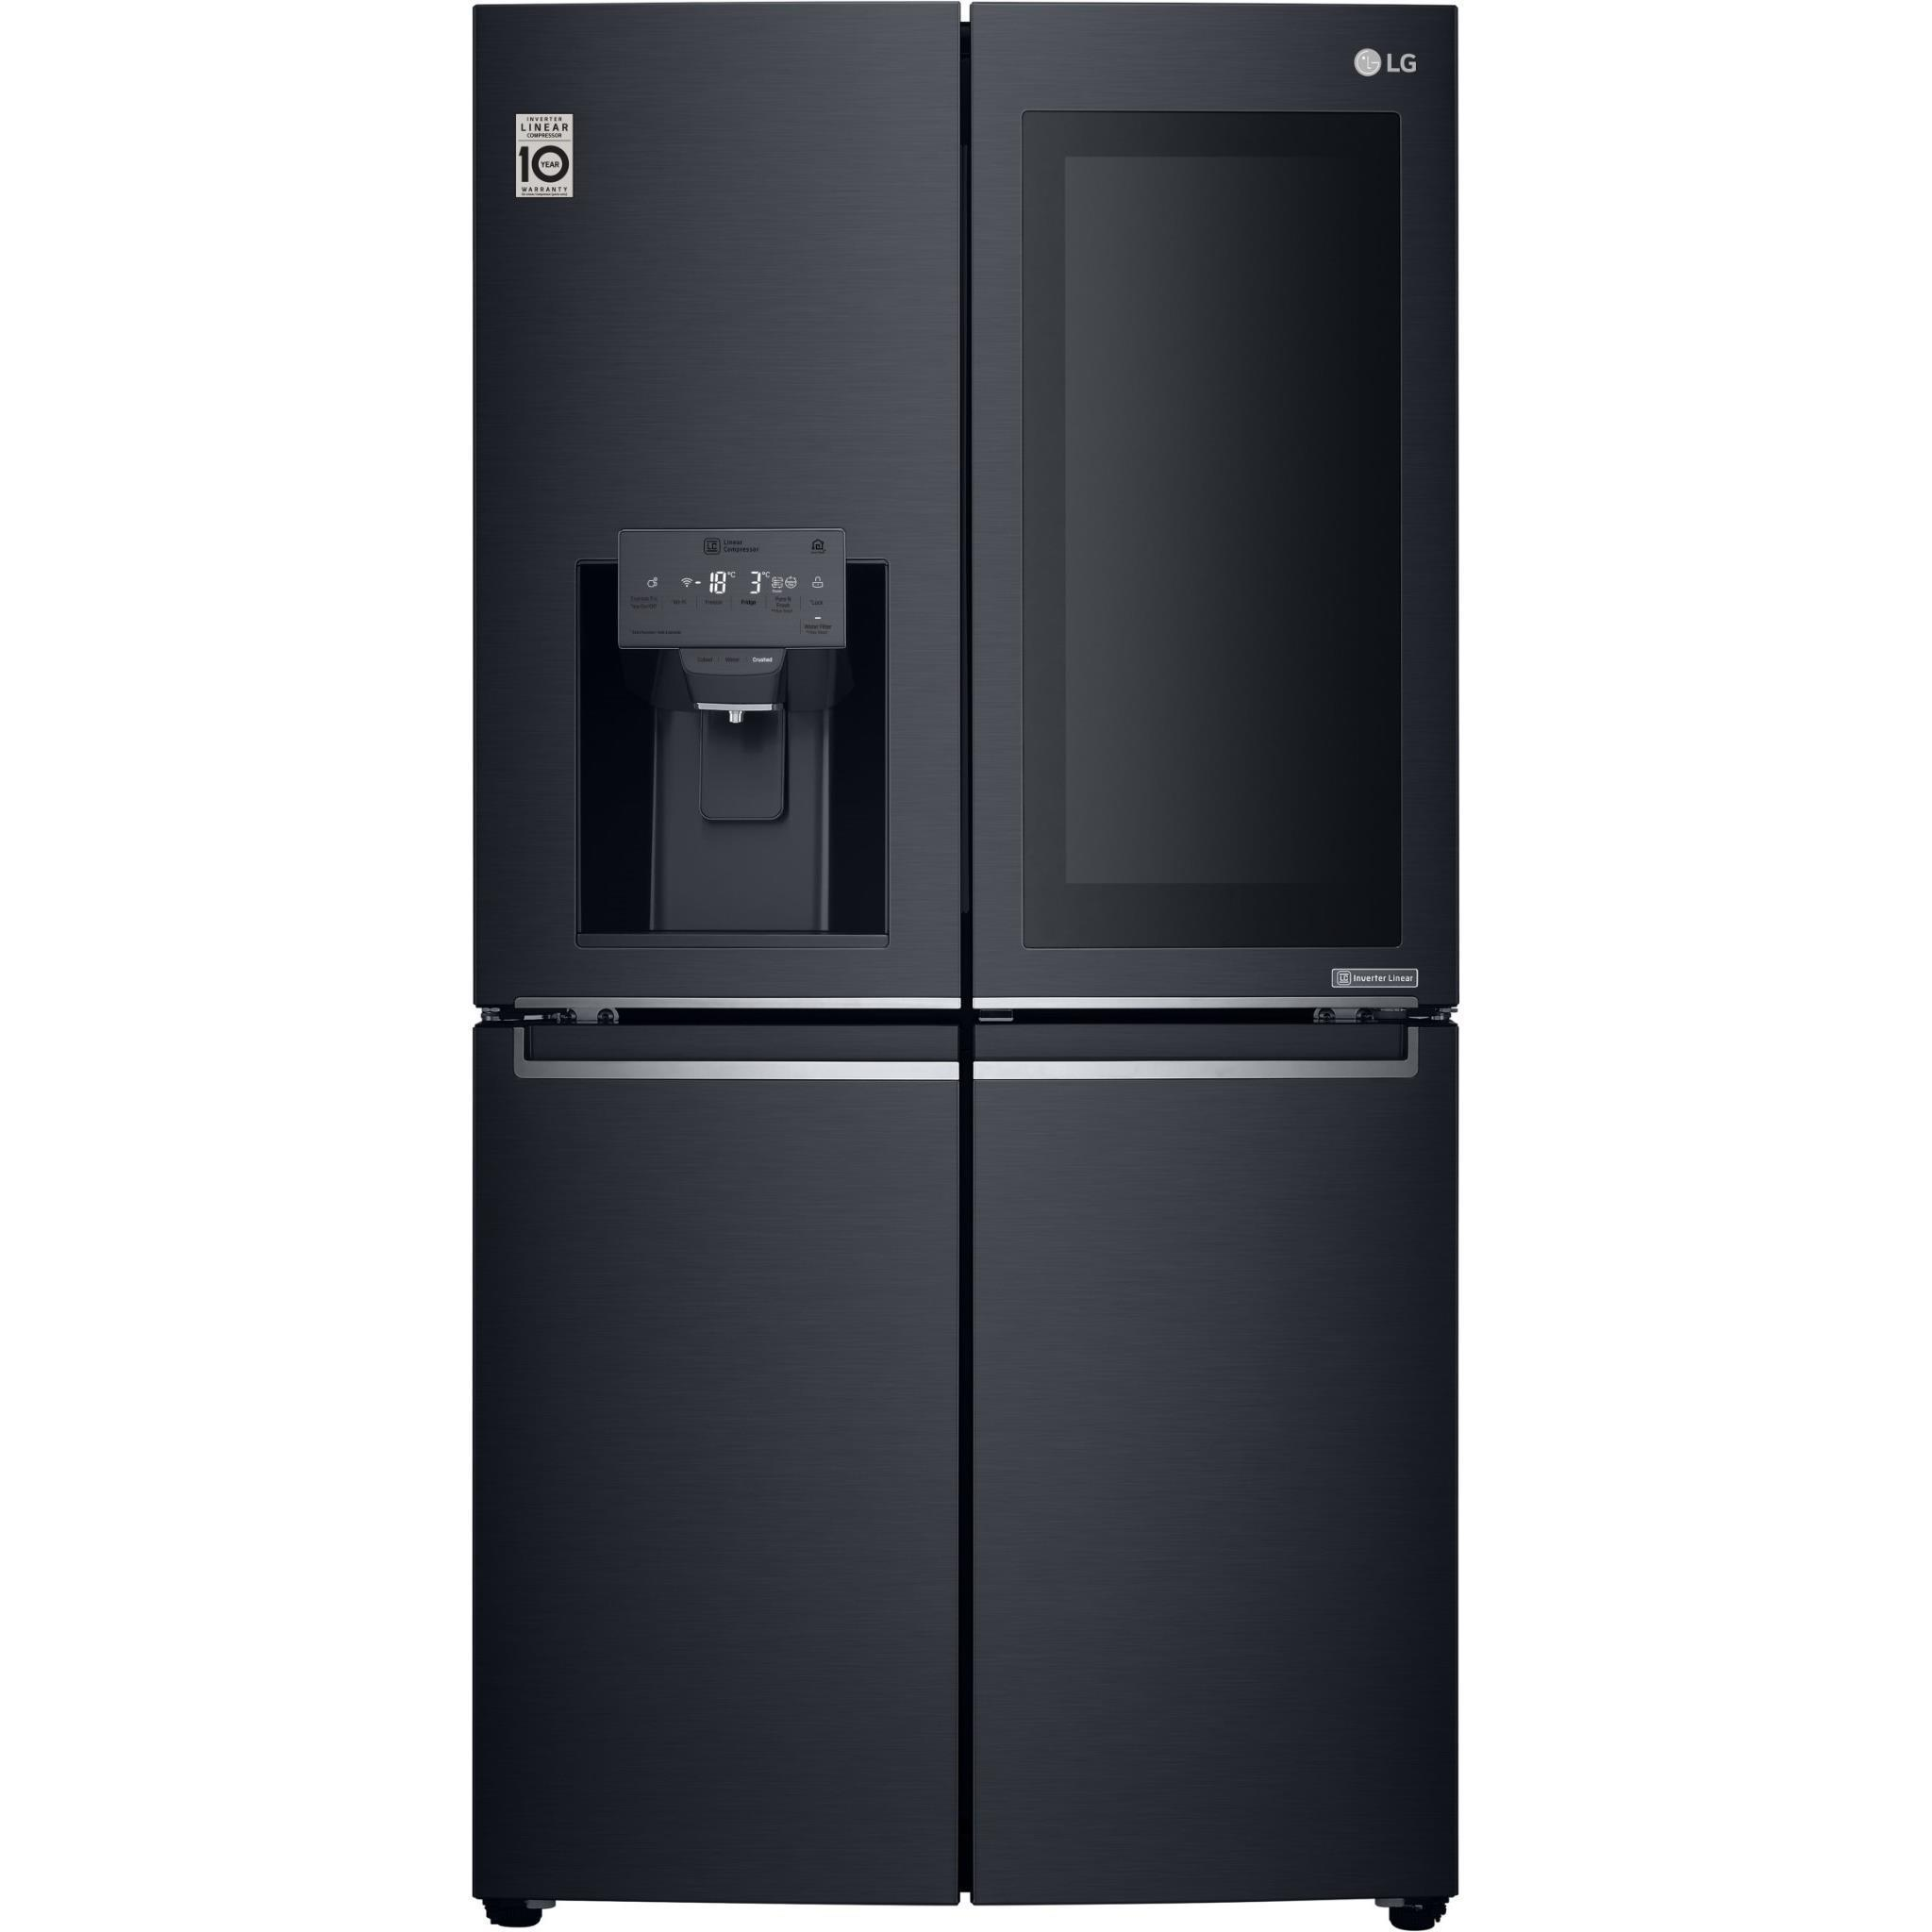 LG GF-V910MBSL 910L Door-in-Door French Door Fridge (Black S/Steel)